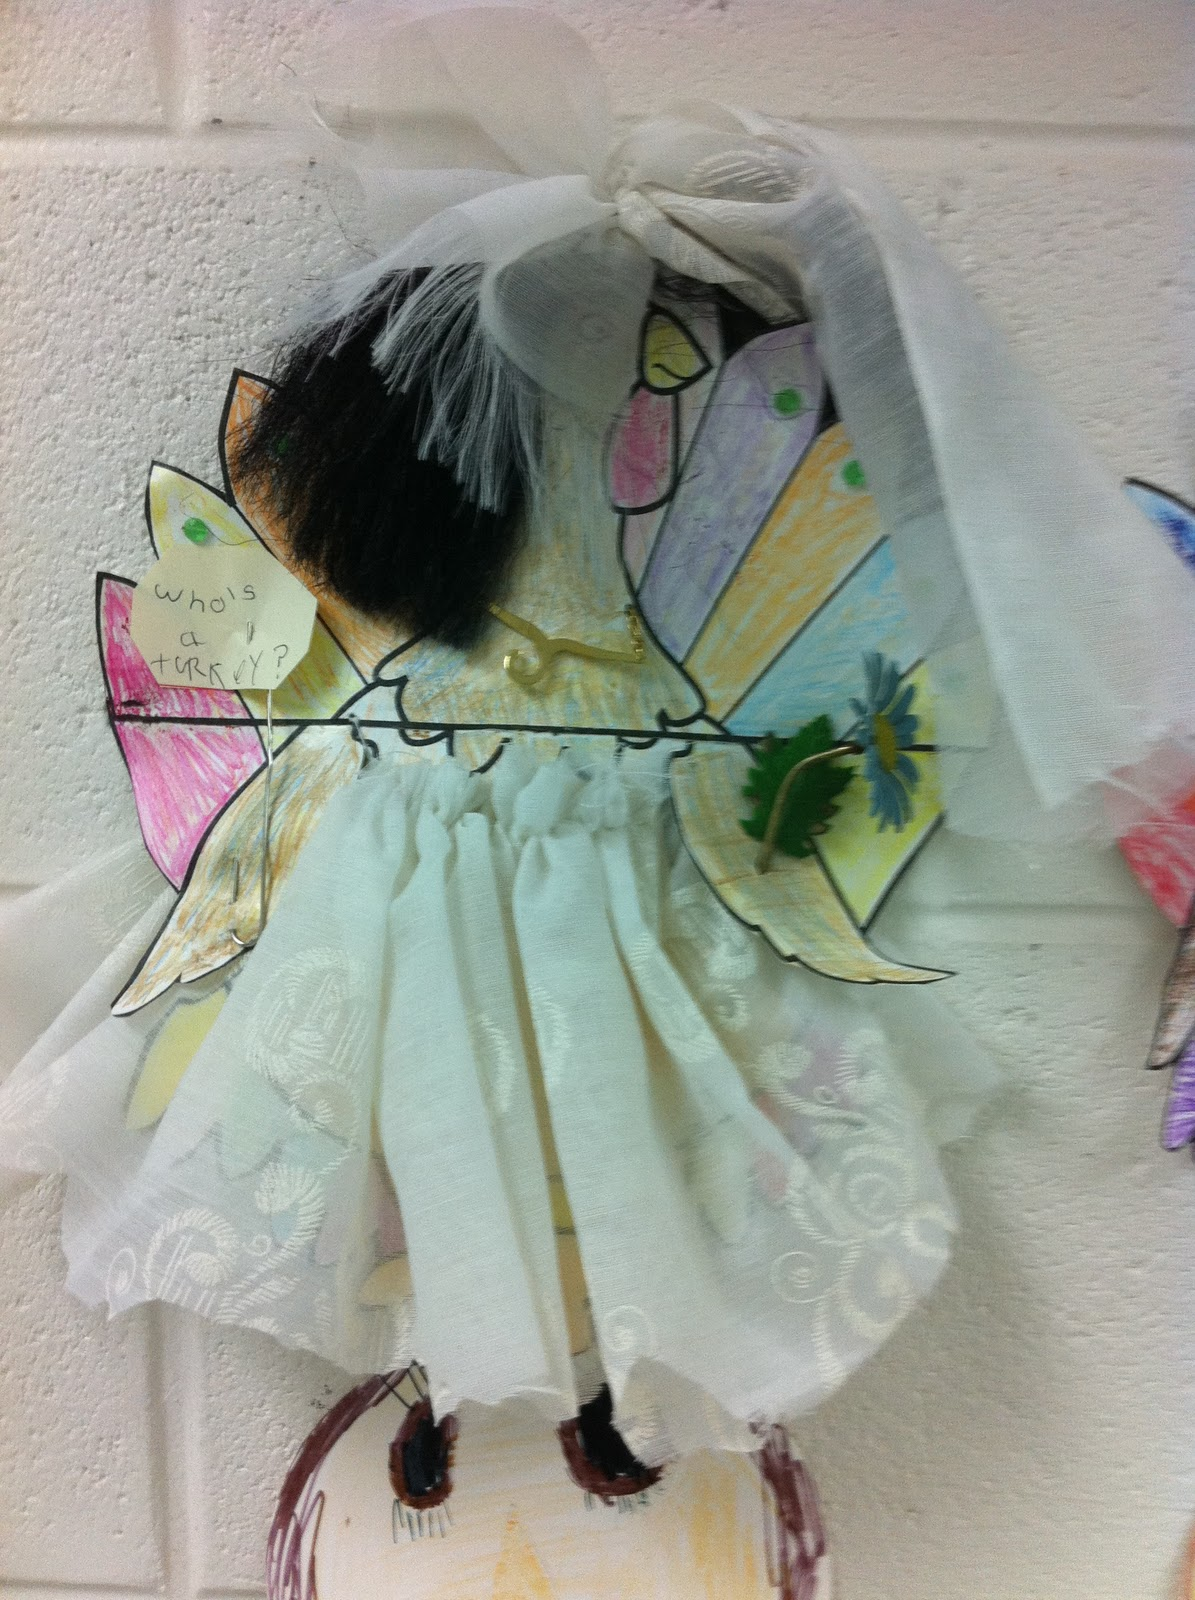 How to decorate and hide the turkey - Bride Turkey